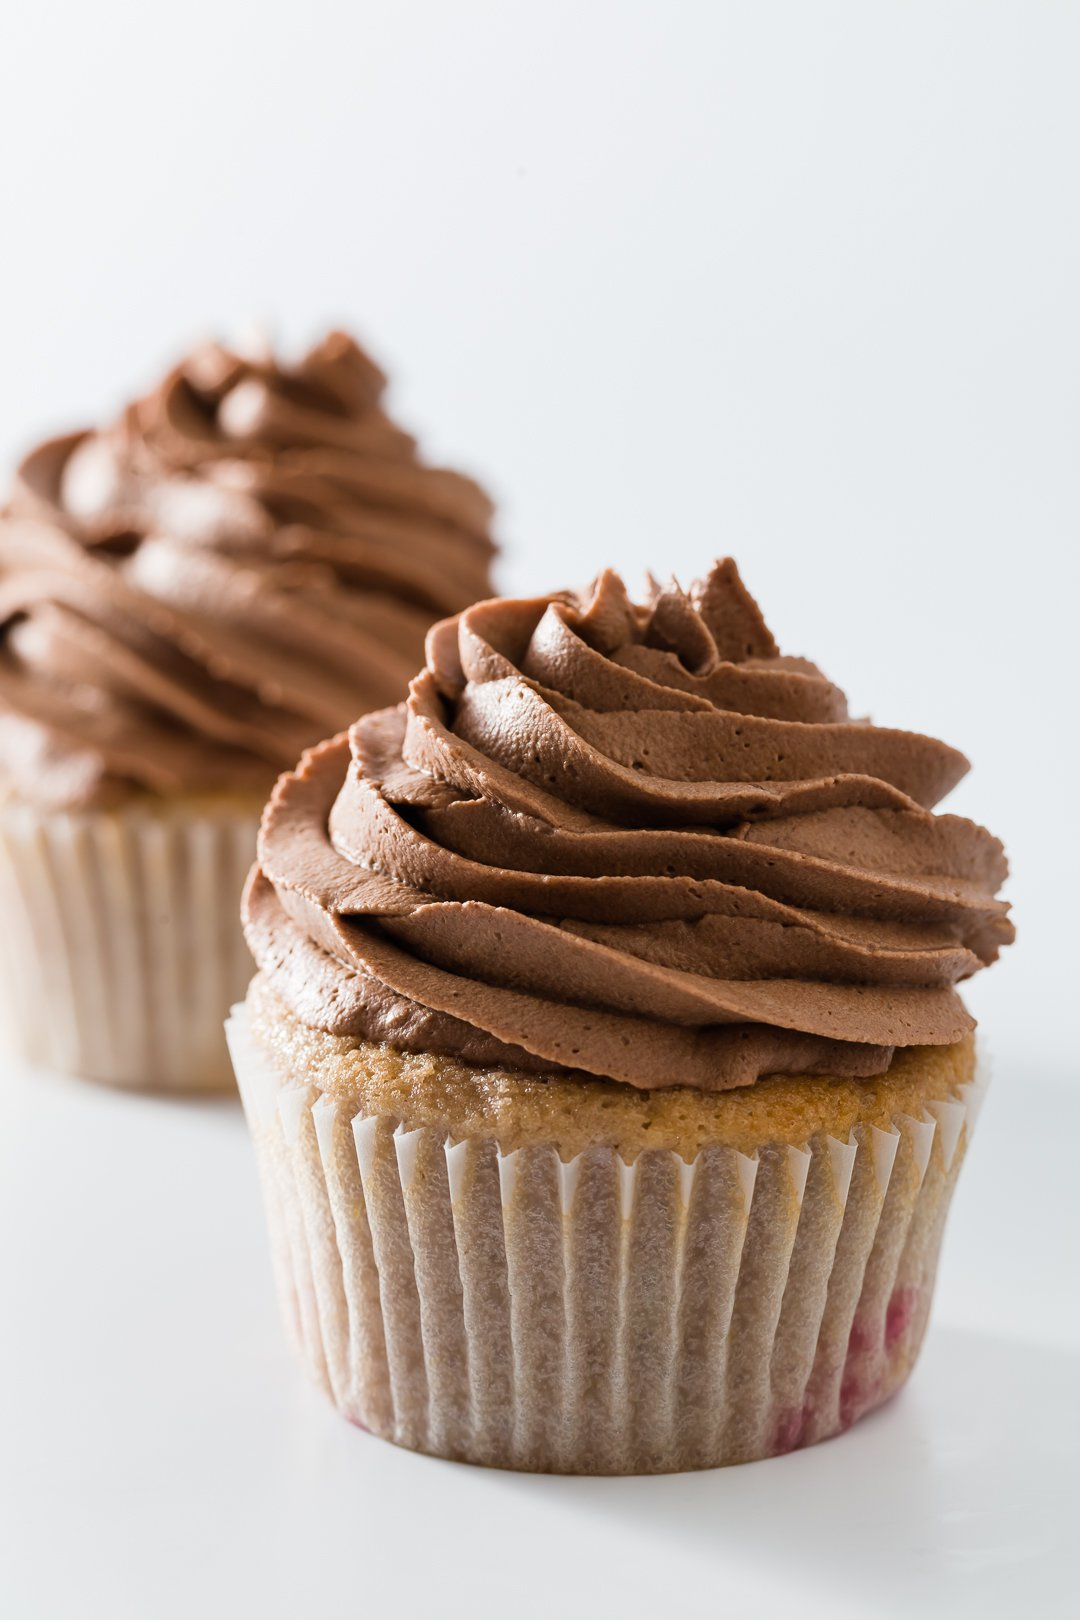 Two cupcakes topped with chocolate whipped cream